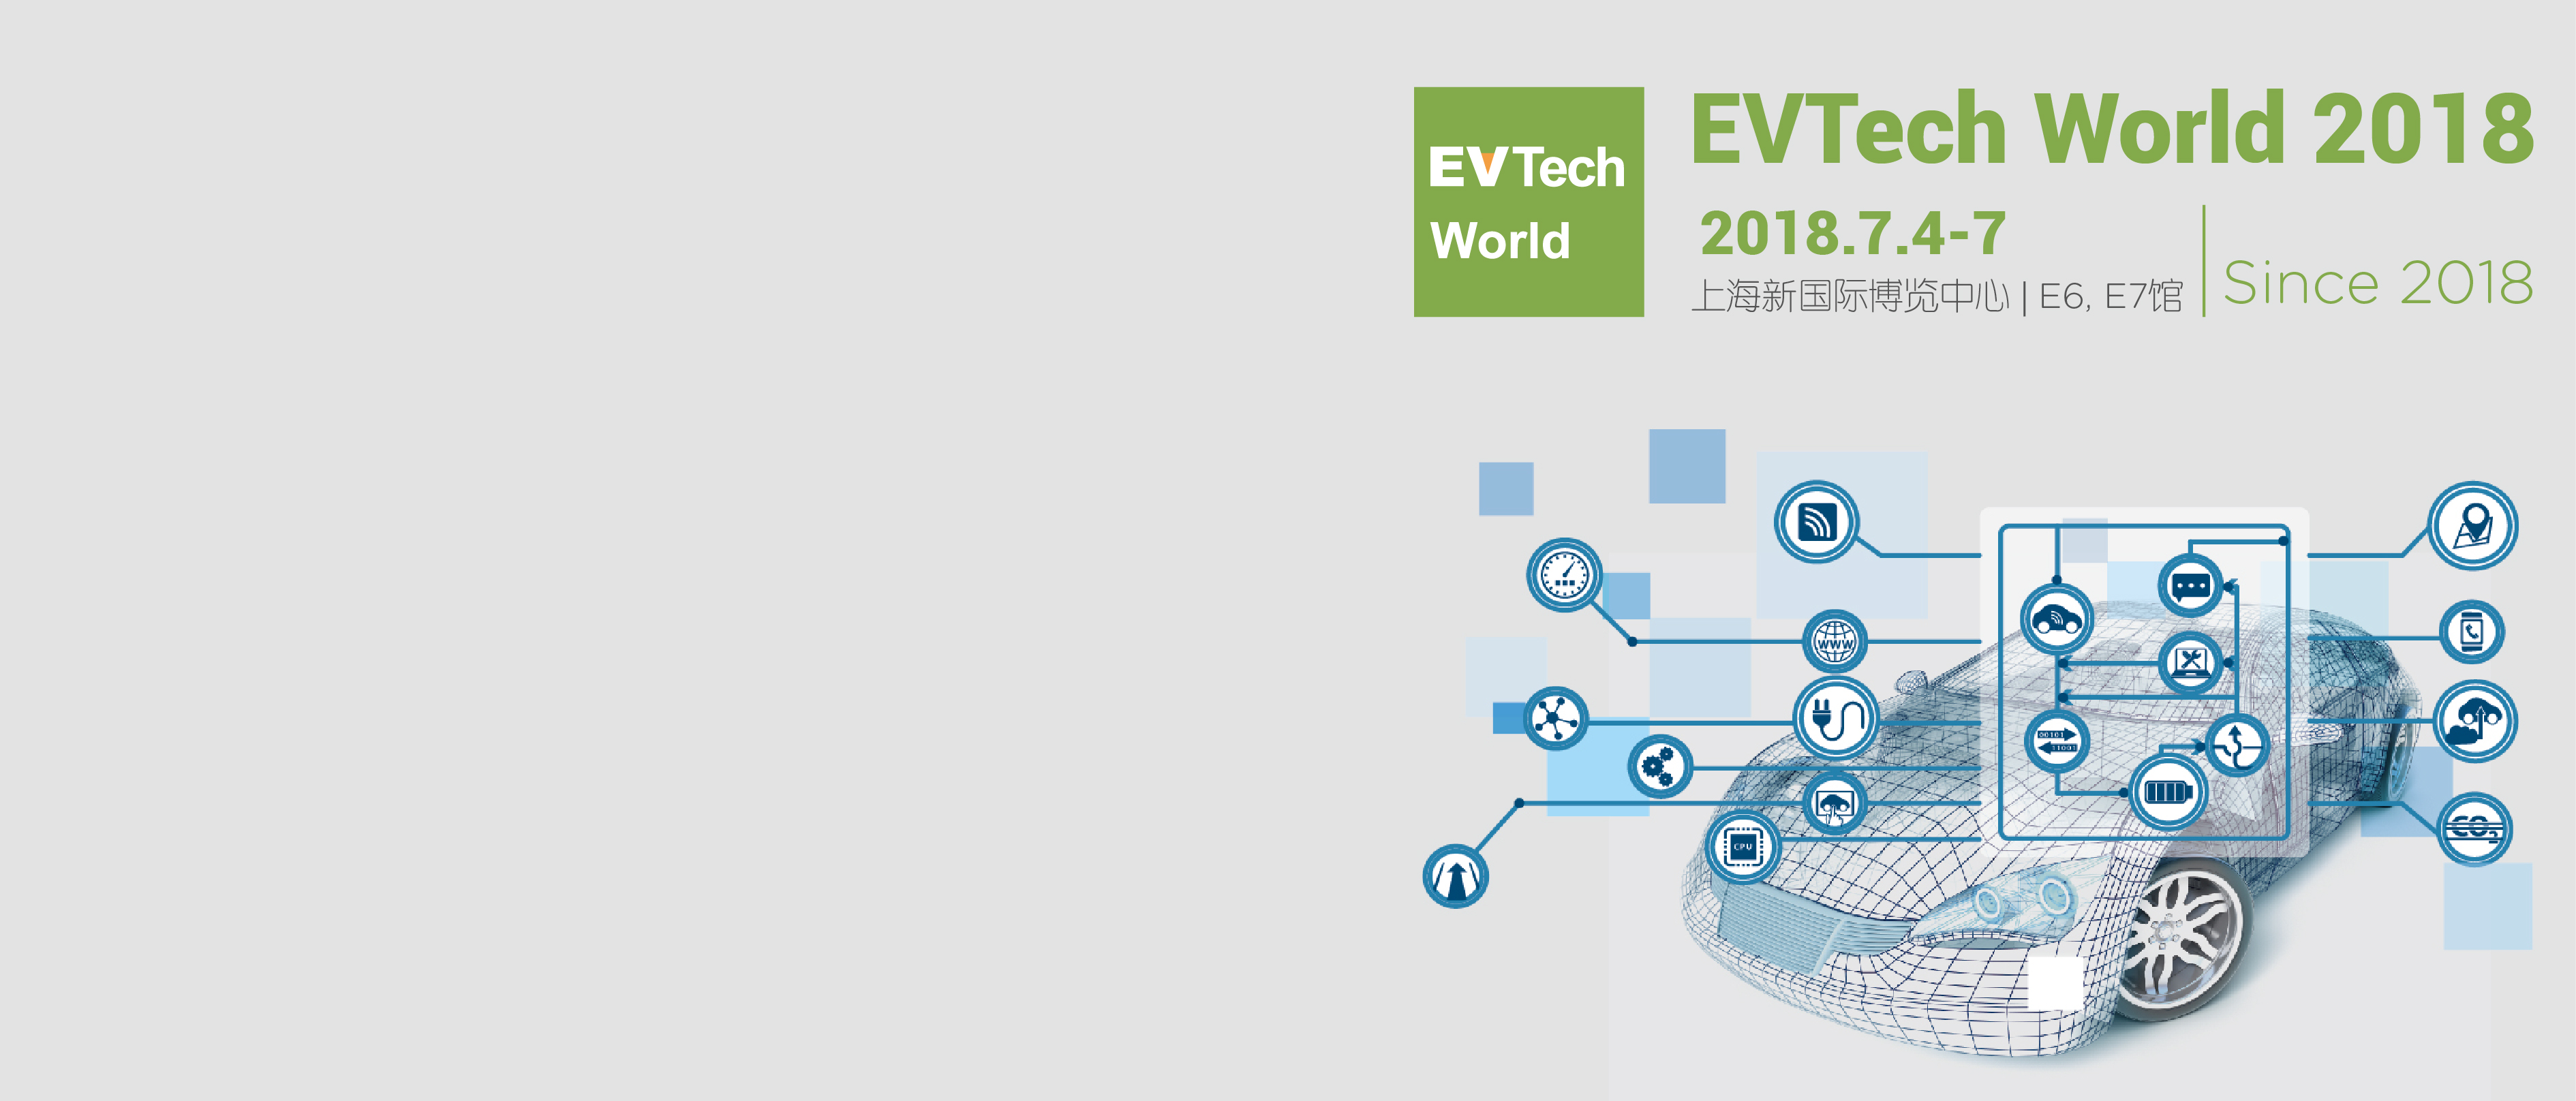 EVTech World